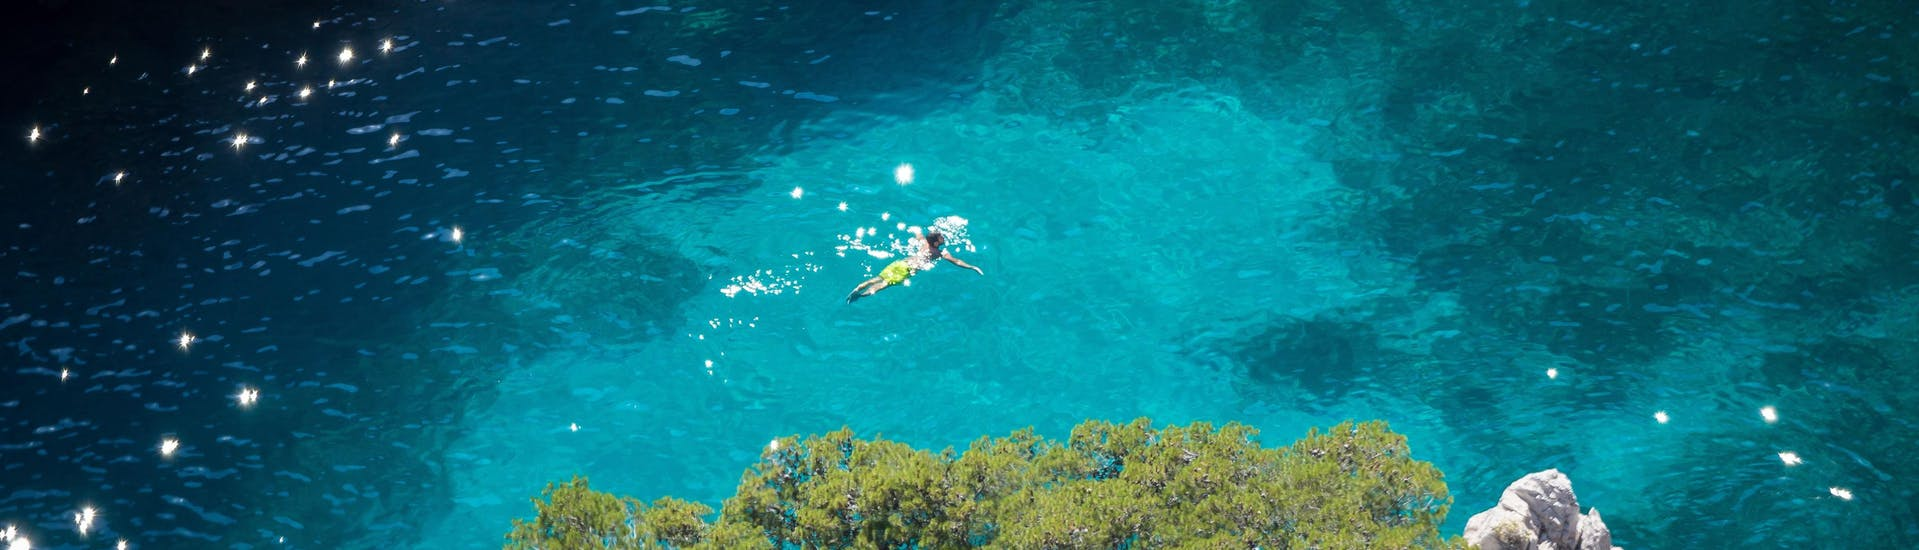 A swimmer is swimming in the turquoise waters of the Calanques National Park, one of the top diving and snorkeling spots on the French Riviera.